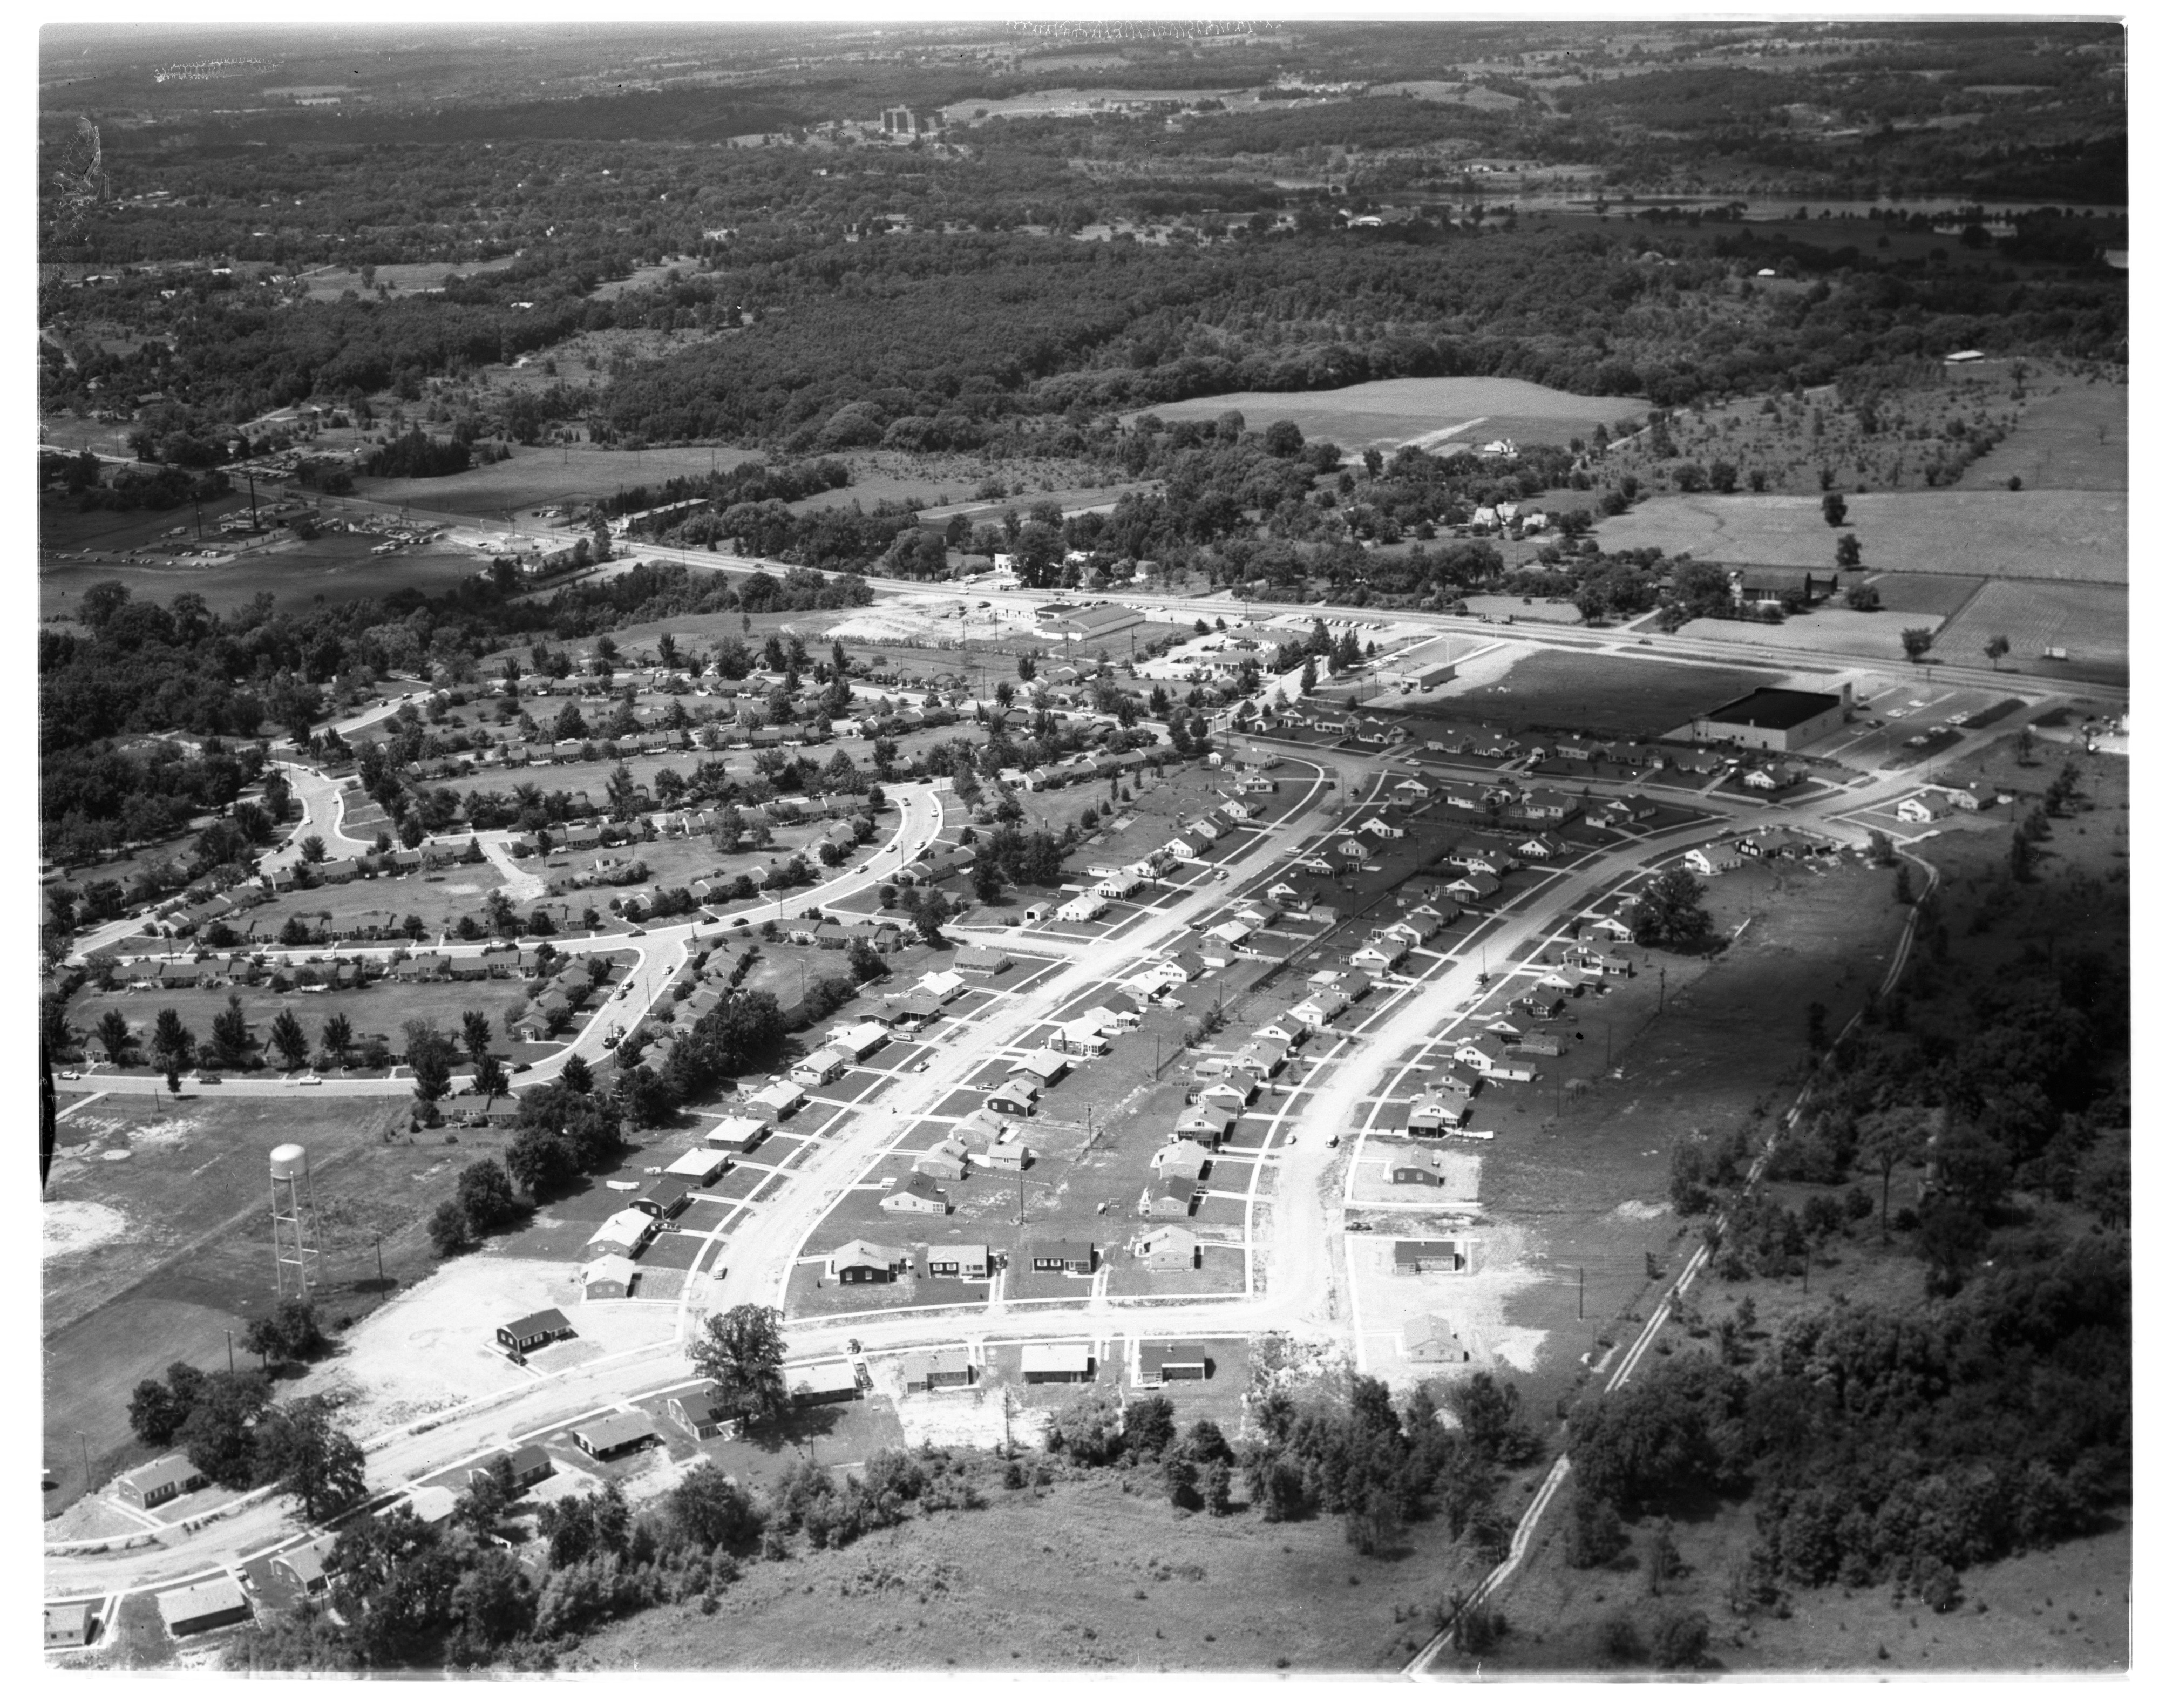 Aerial View of Pittsfield Village and Pittsfield Park, East Ann Arbor, July 1956 image